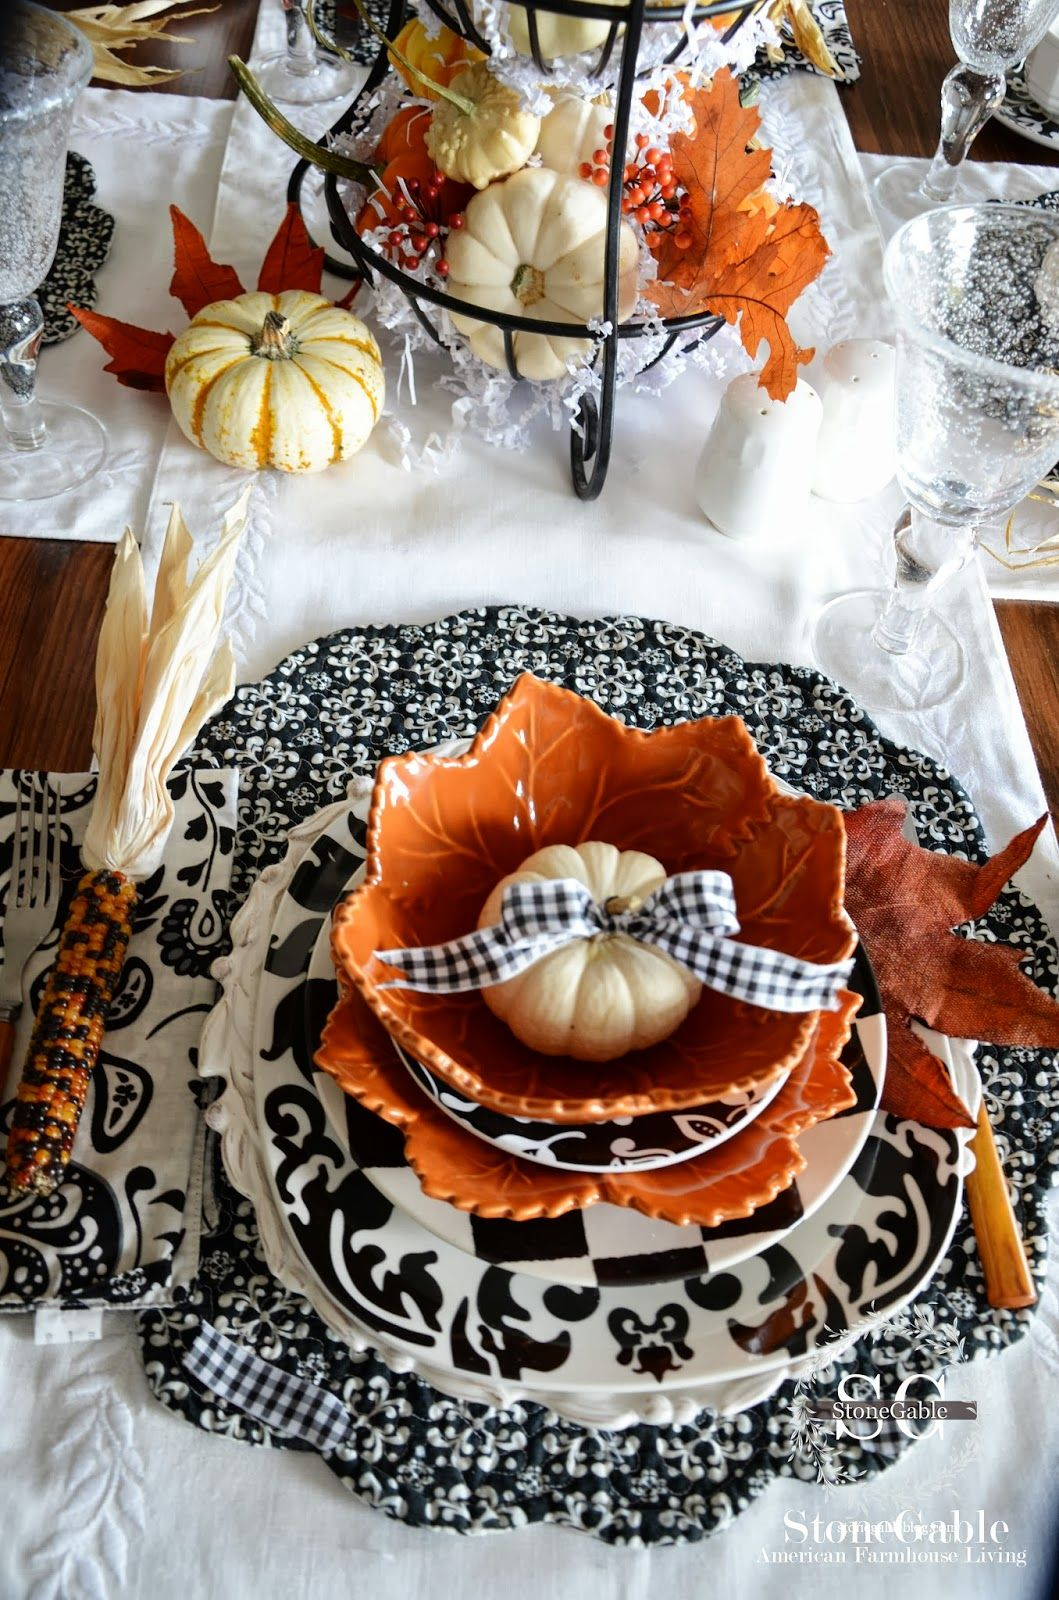 20 new ways to decorate your home with pumpkins halloween table settingsfall - Halloween Place Settings